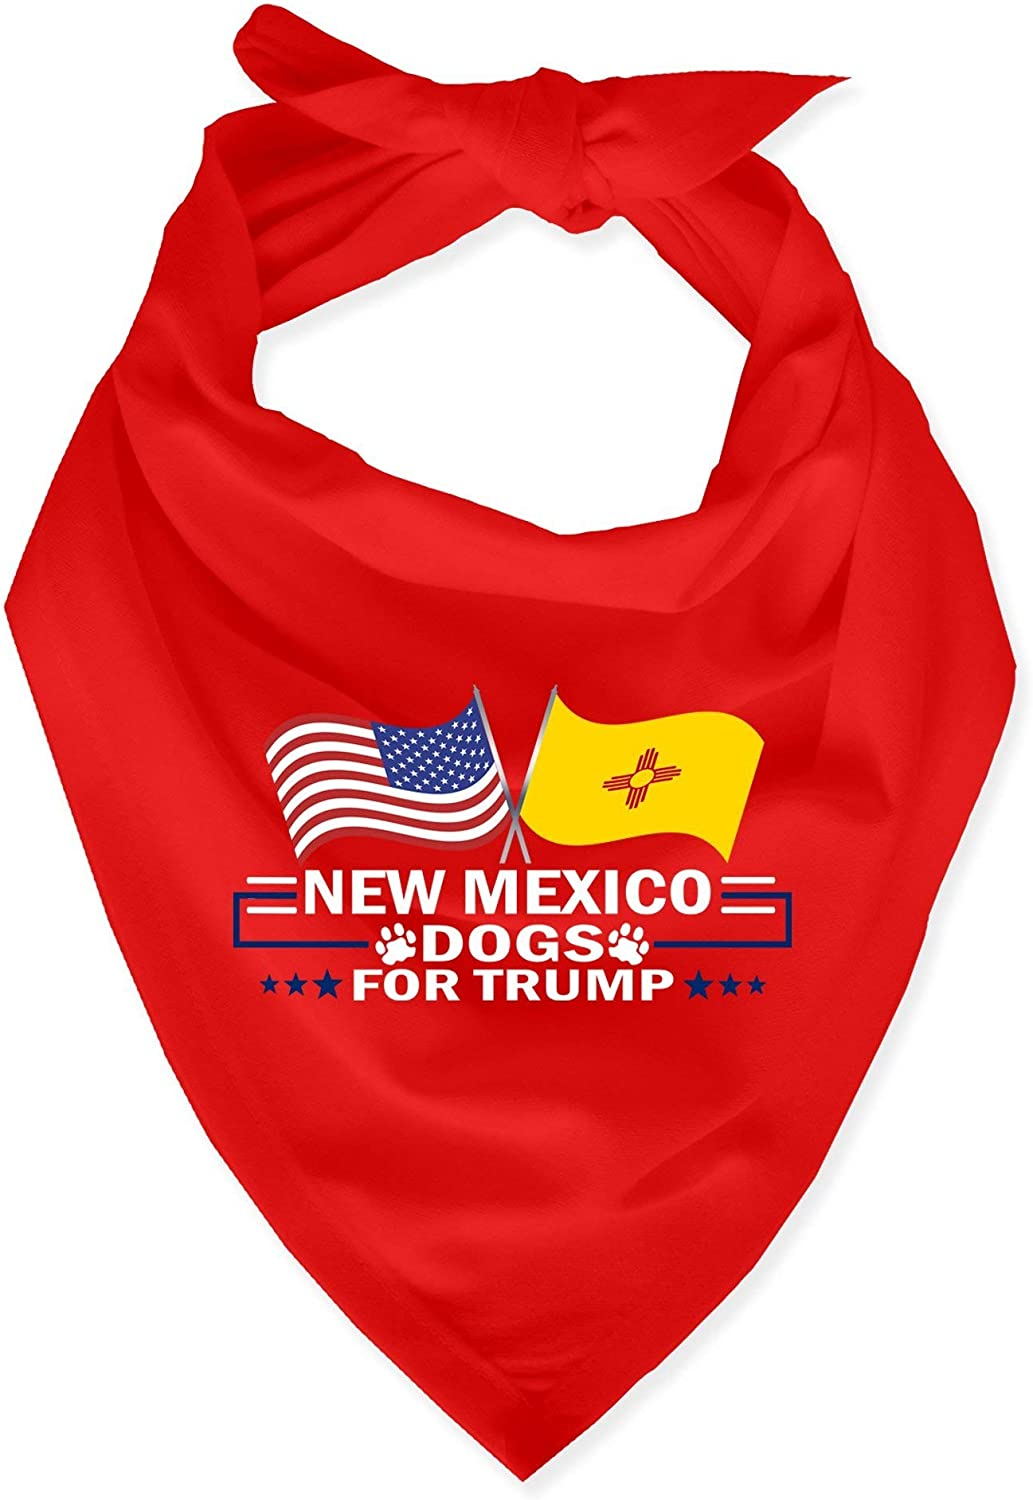 Republican Dogs 50 States for Trump Dog Bandana All 50 States Available One Size Fits All Cotton Polyester Fiber